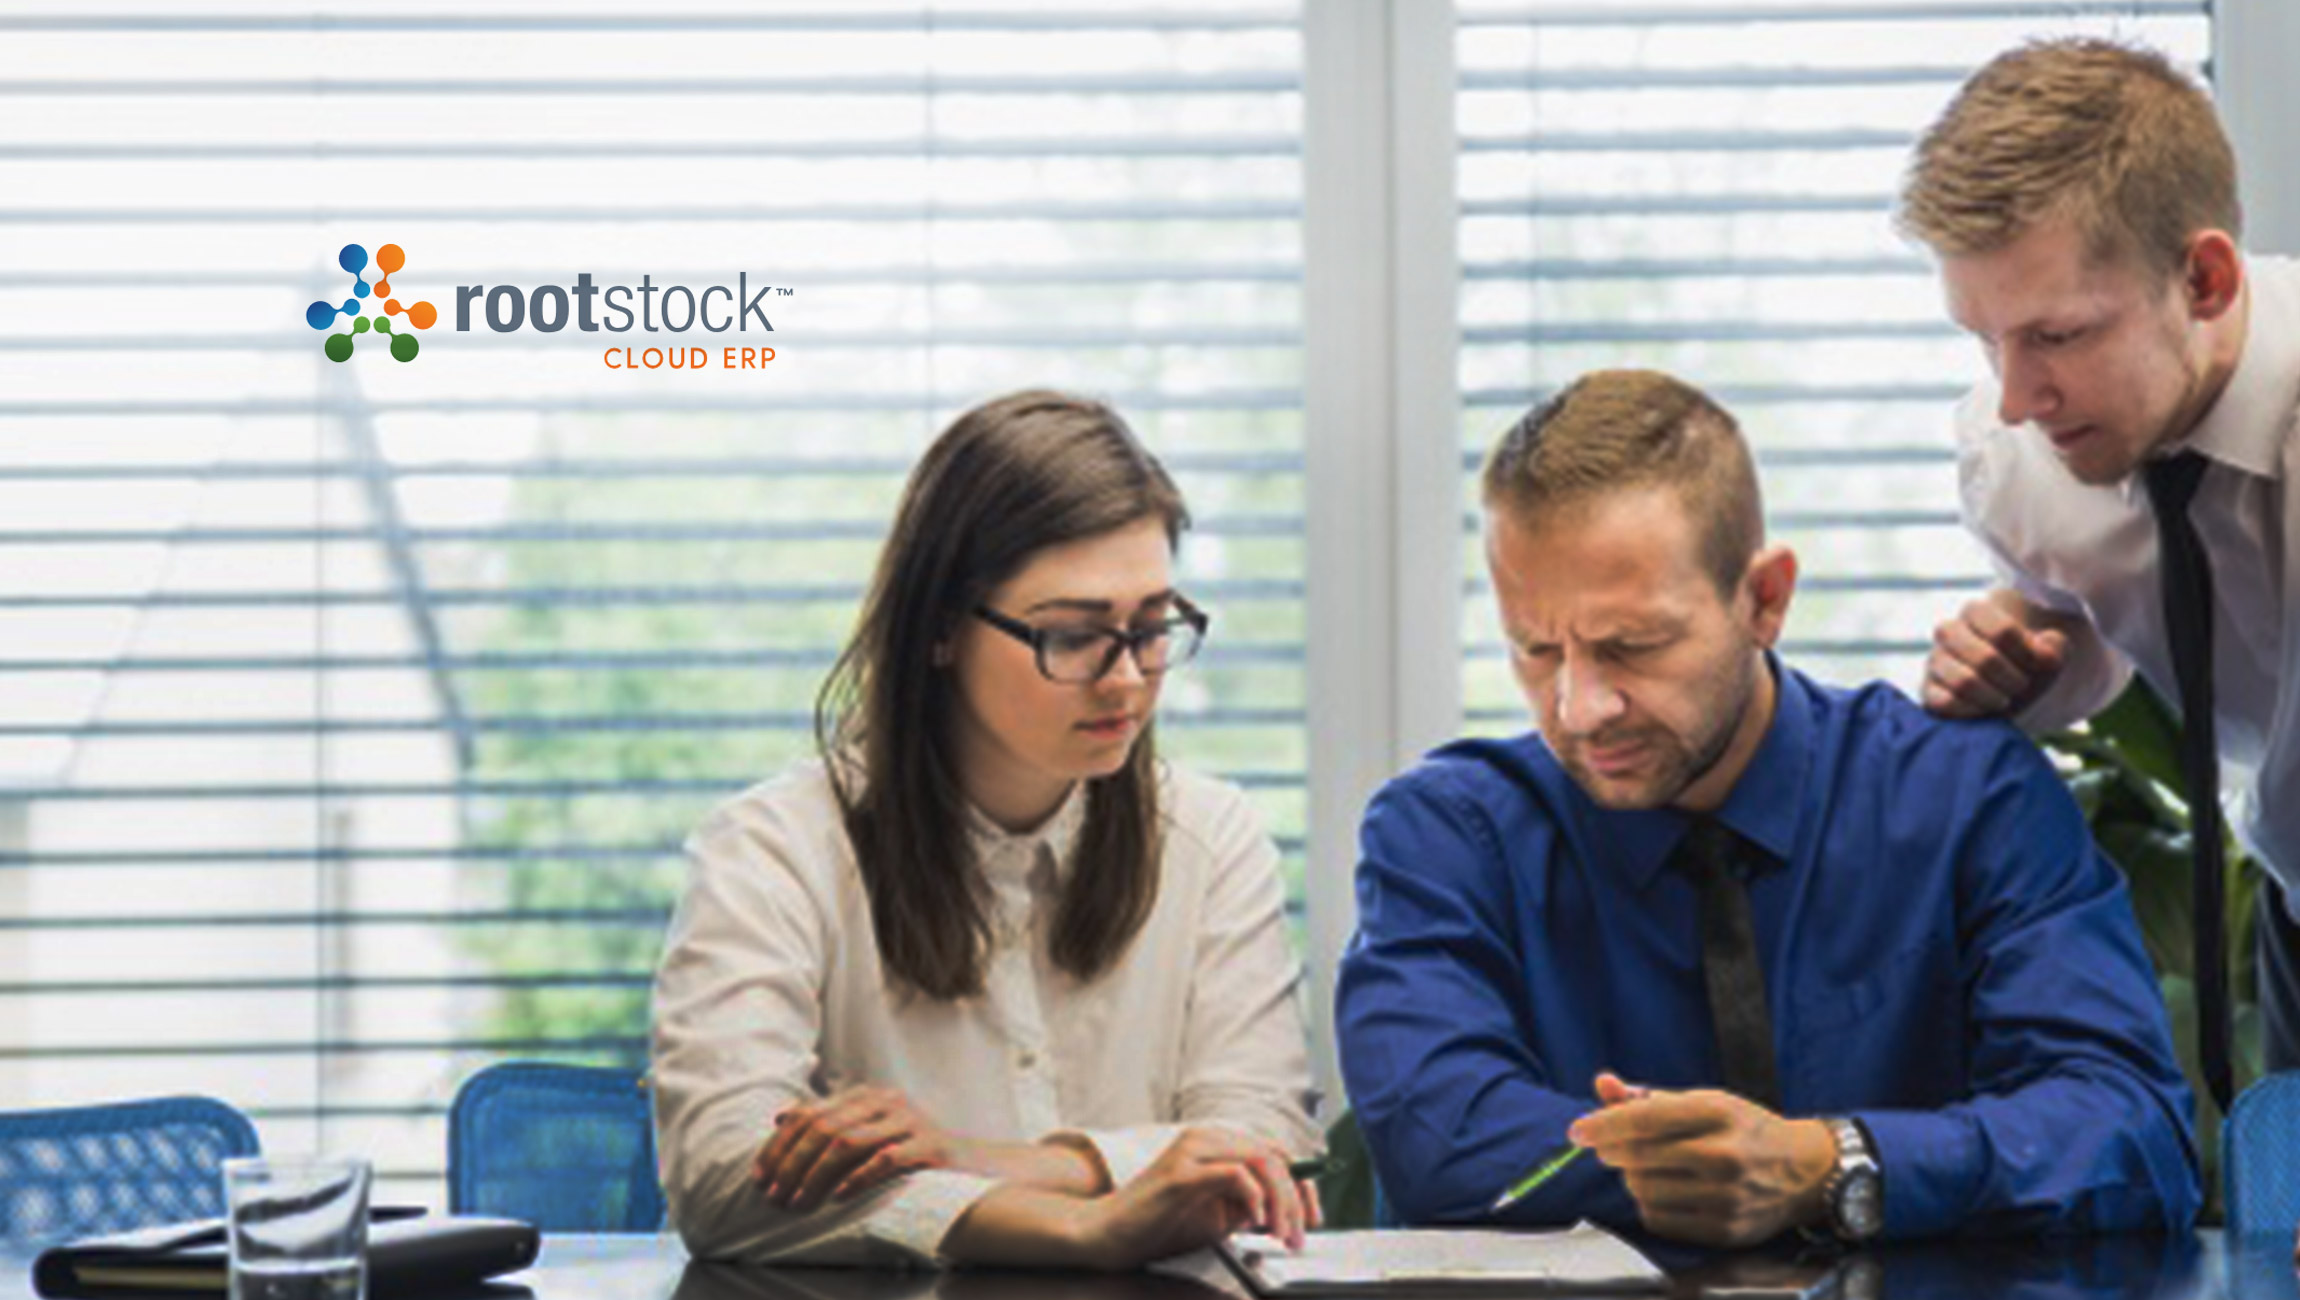 Rootstock Software Announces New International Channel Partners